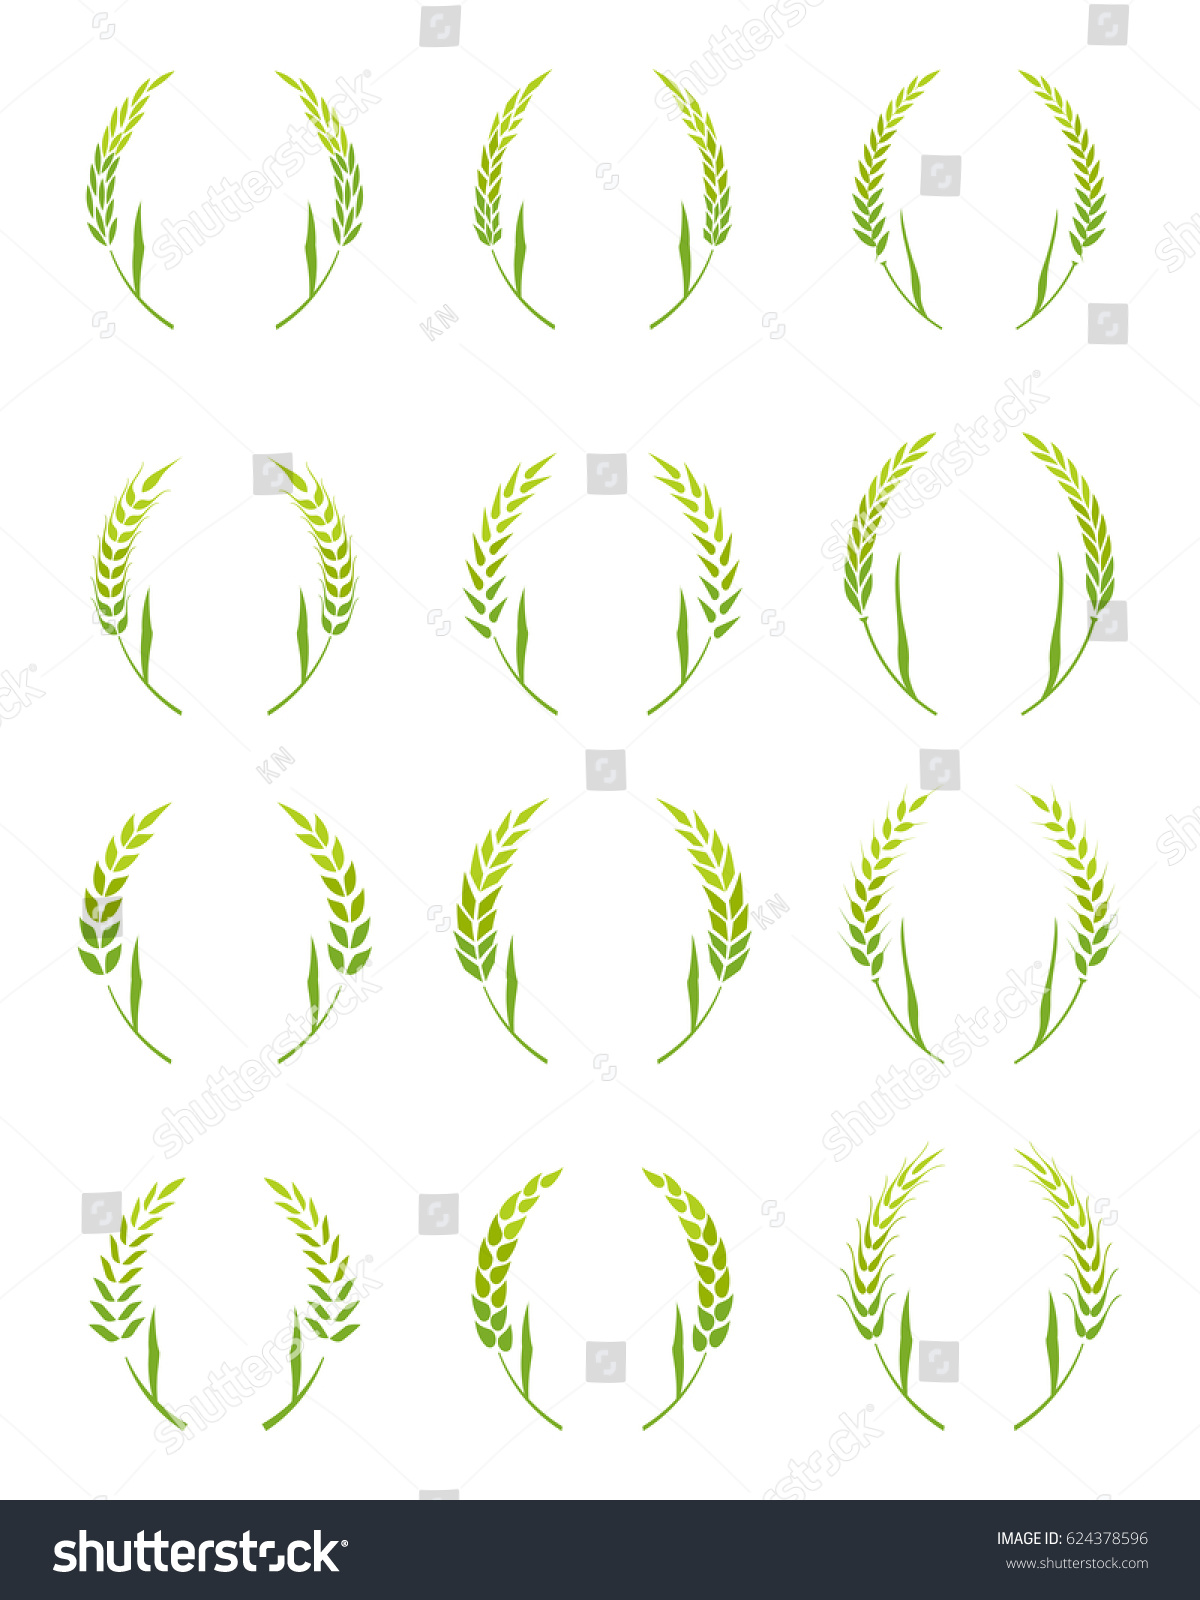 Of Wreaths Set Wreaths Vector Circular Decorative Elements Stock Vector